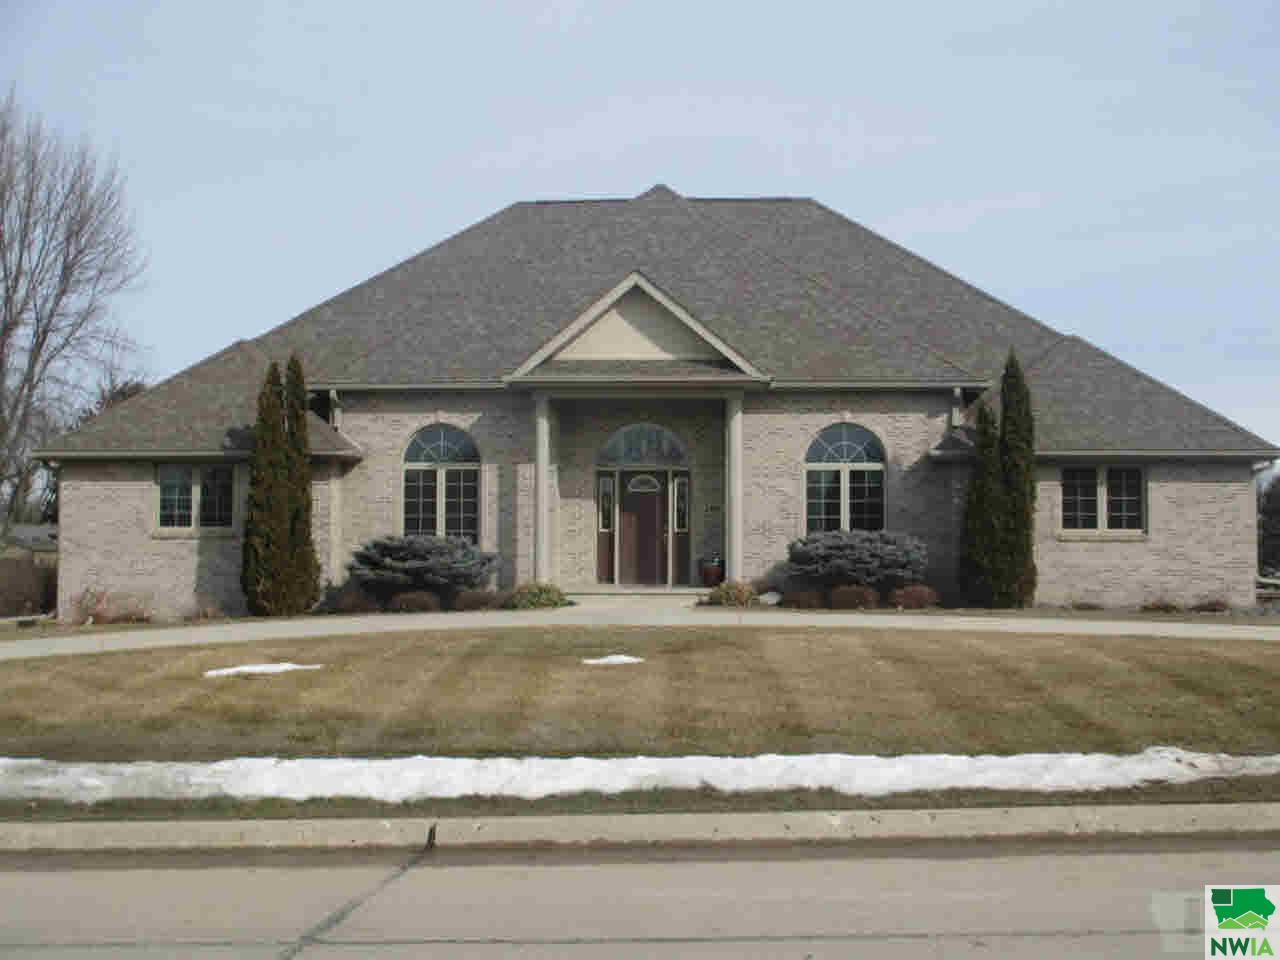 Property for sale at 160 19th St Se, Sioux Center,  IA 51250